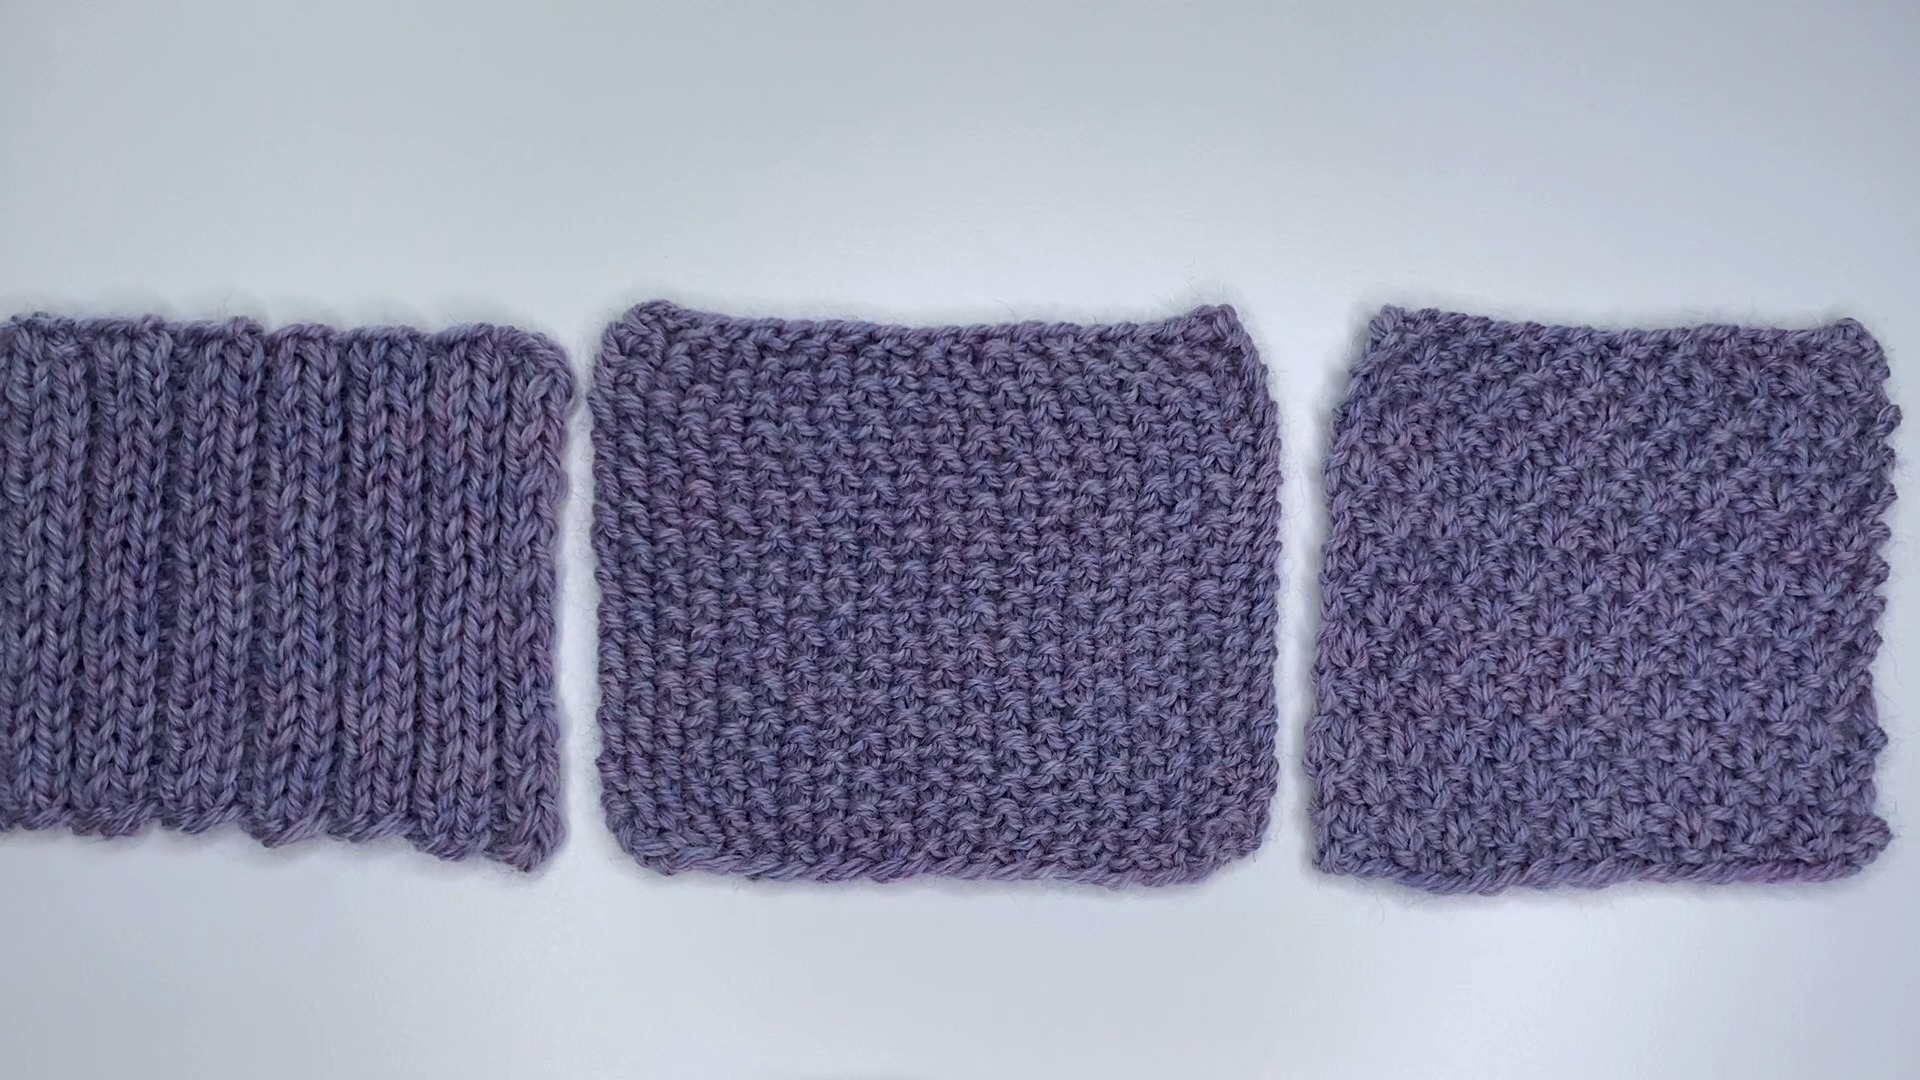 14-Day Learn to Knit Series: Day 6